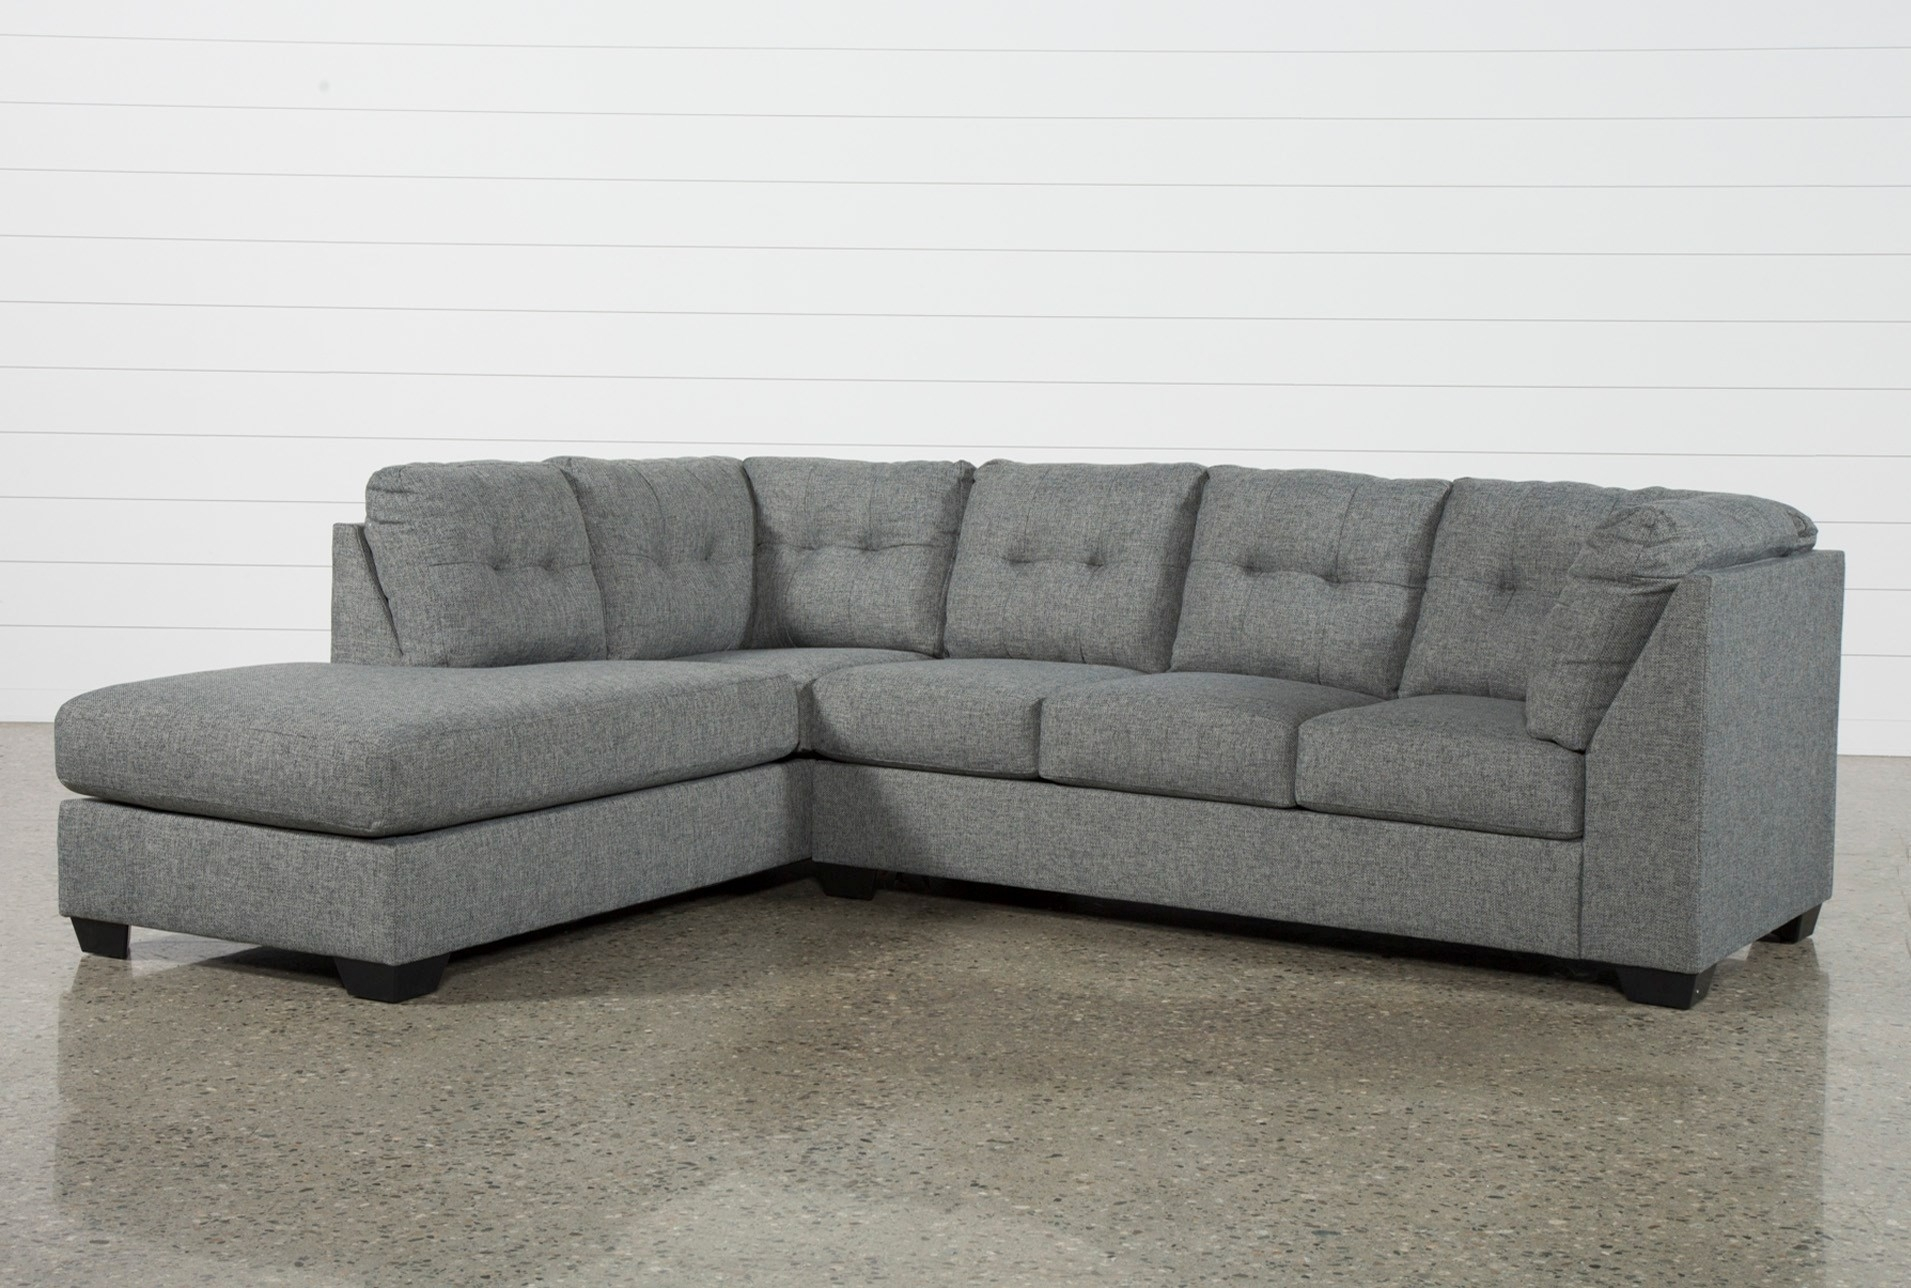 2 Piece Sectional Lucy Grey W Laf Chaise Living Spaces 225935 Fabric with regard to Lucy Grey 2 Piece Sectionals With Raf Chaise